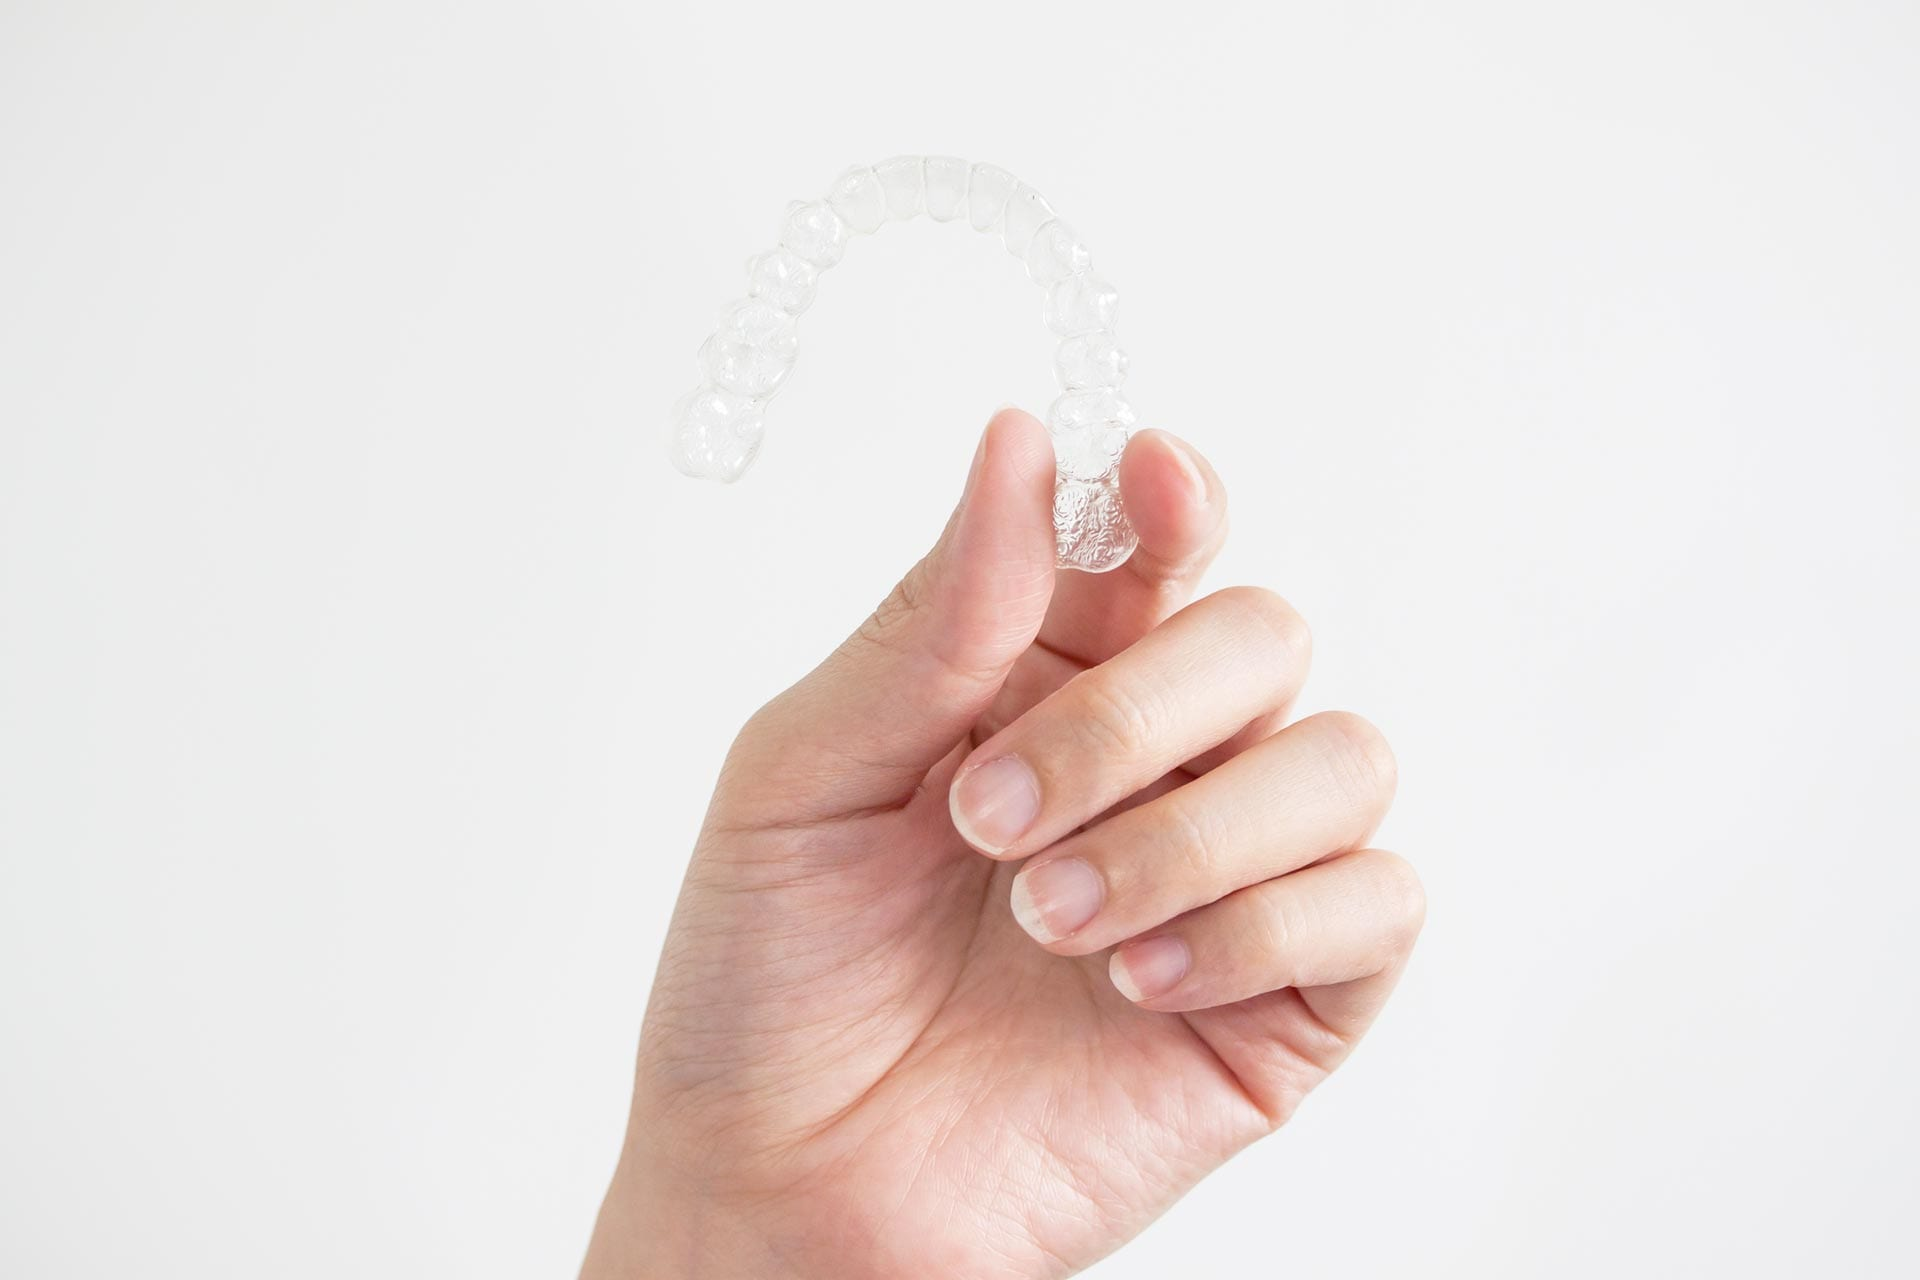 Hand holding onto an Invisalign clear aligner